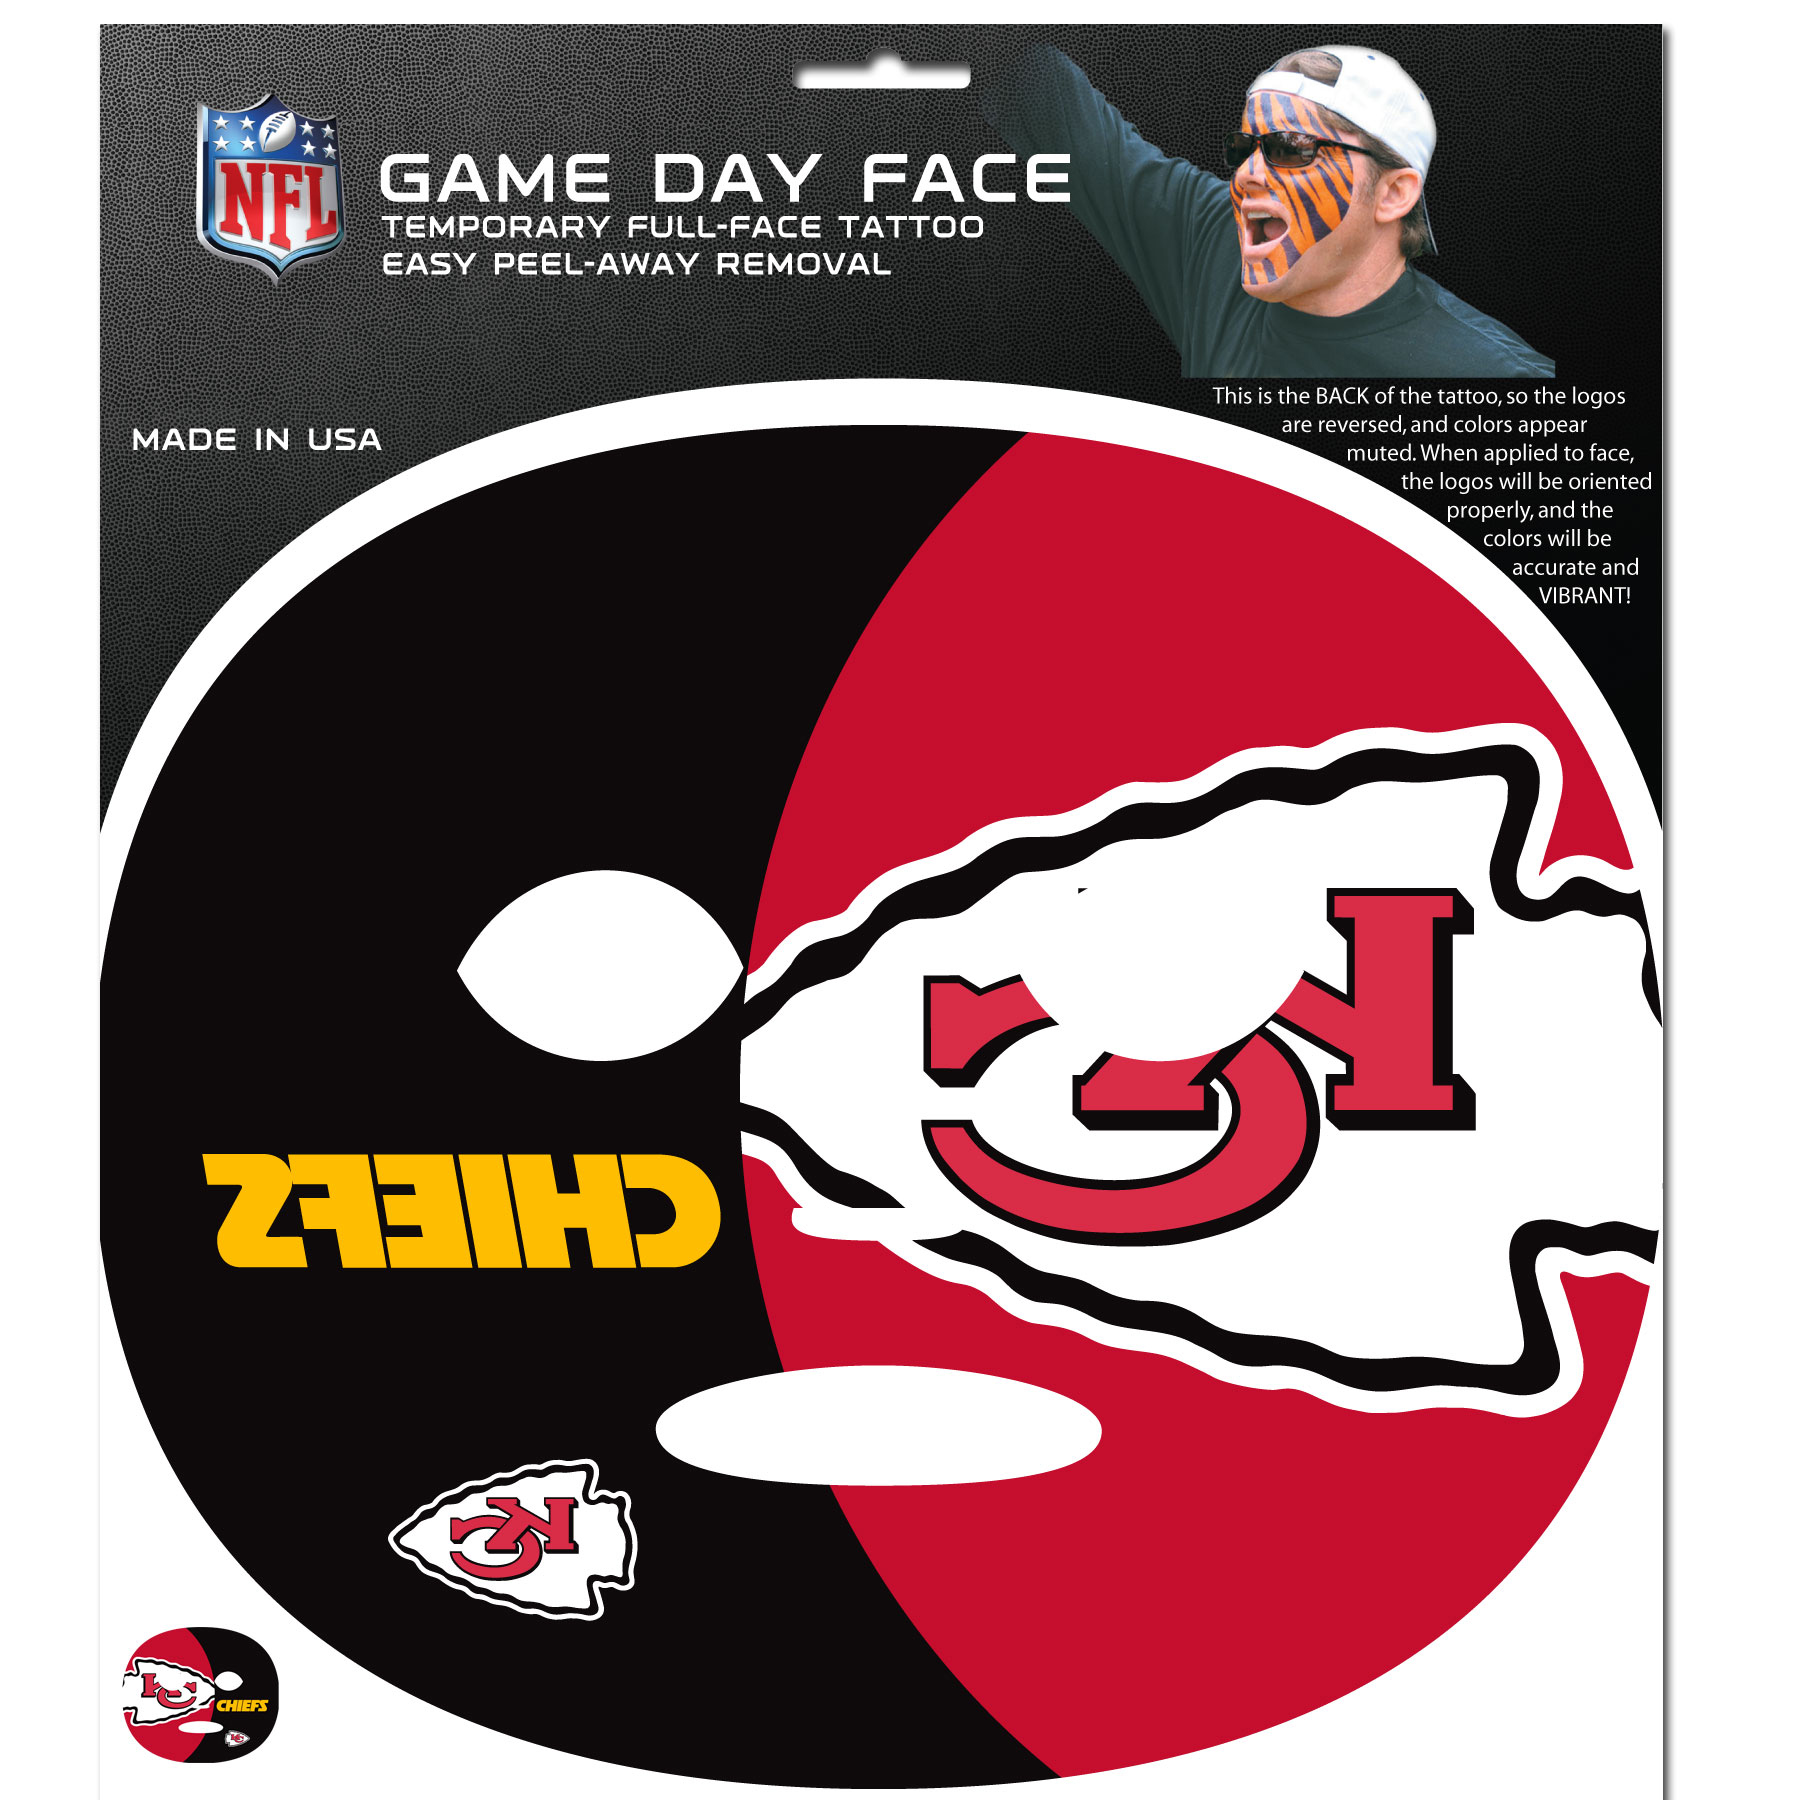 Kansas City Chiefs Set of 8 Game Day Faces - No better way to show your team pride than by painting your face. Siskiyou's Game Day Face Temporary Tattoo isn't your typical face paint. It is a water based application that doesn't smudge, smear or sweat off while you're wearing it and easily peels off after you're done celebrating your team's big Win! The temporary tattoo is large enough to trim down to fit your face. Our Game Day Face Temporary Tattoo's are fun for fans of all ages. You may have seen our product before, these are the same Temporary Face Tattoos as pitched on ABC's Shark Tank.